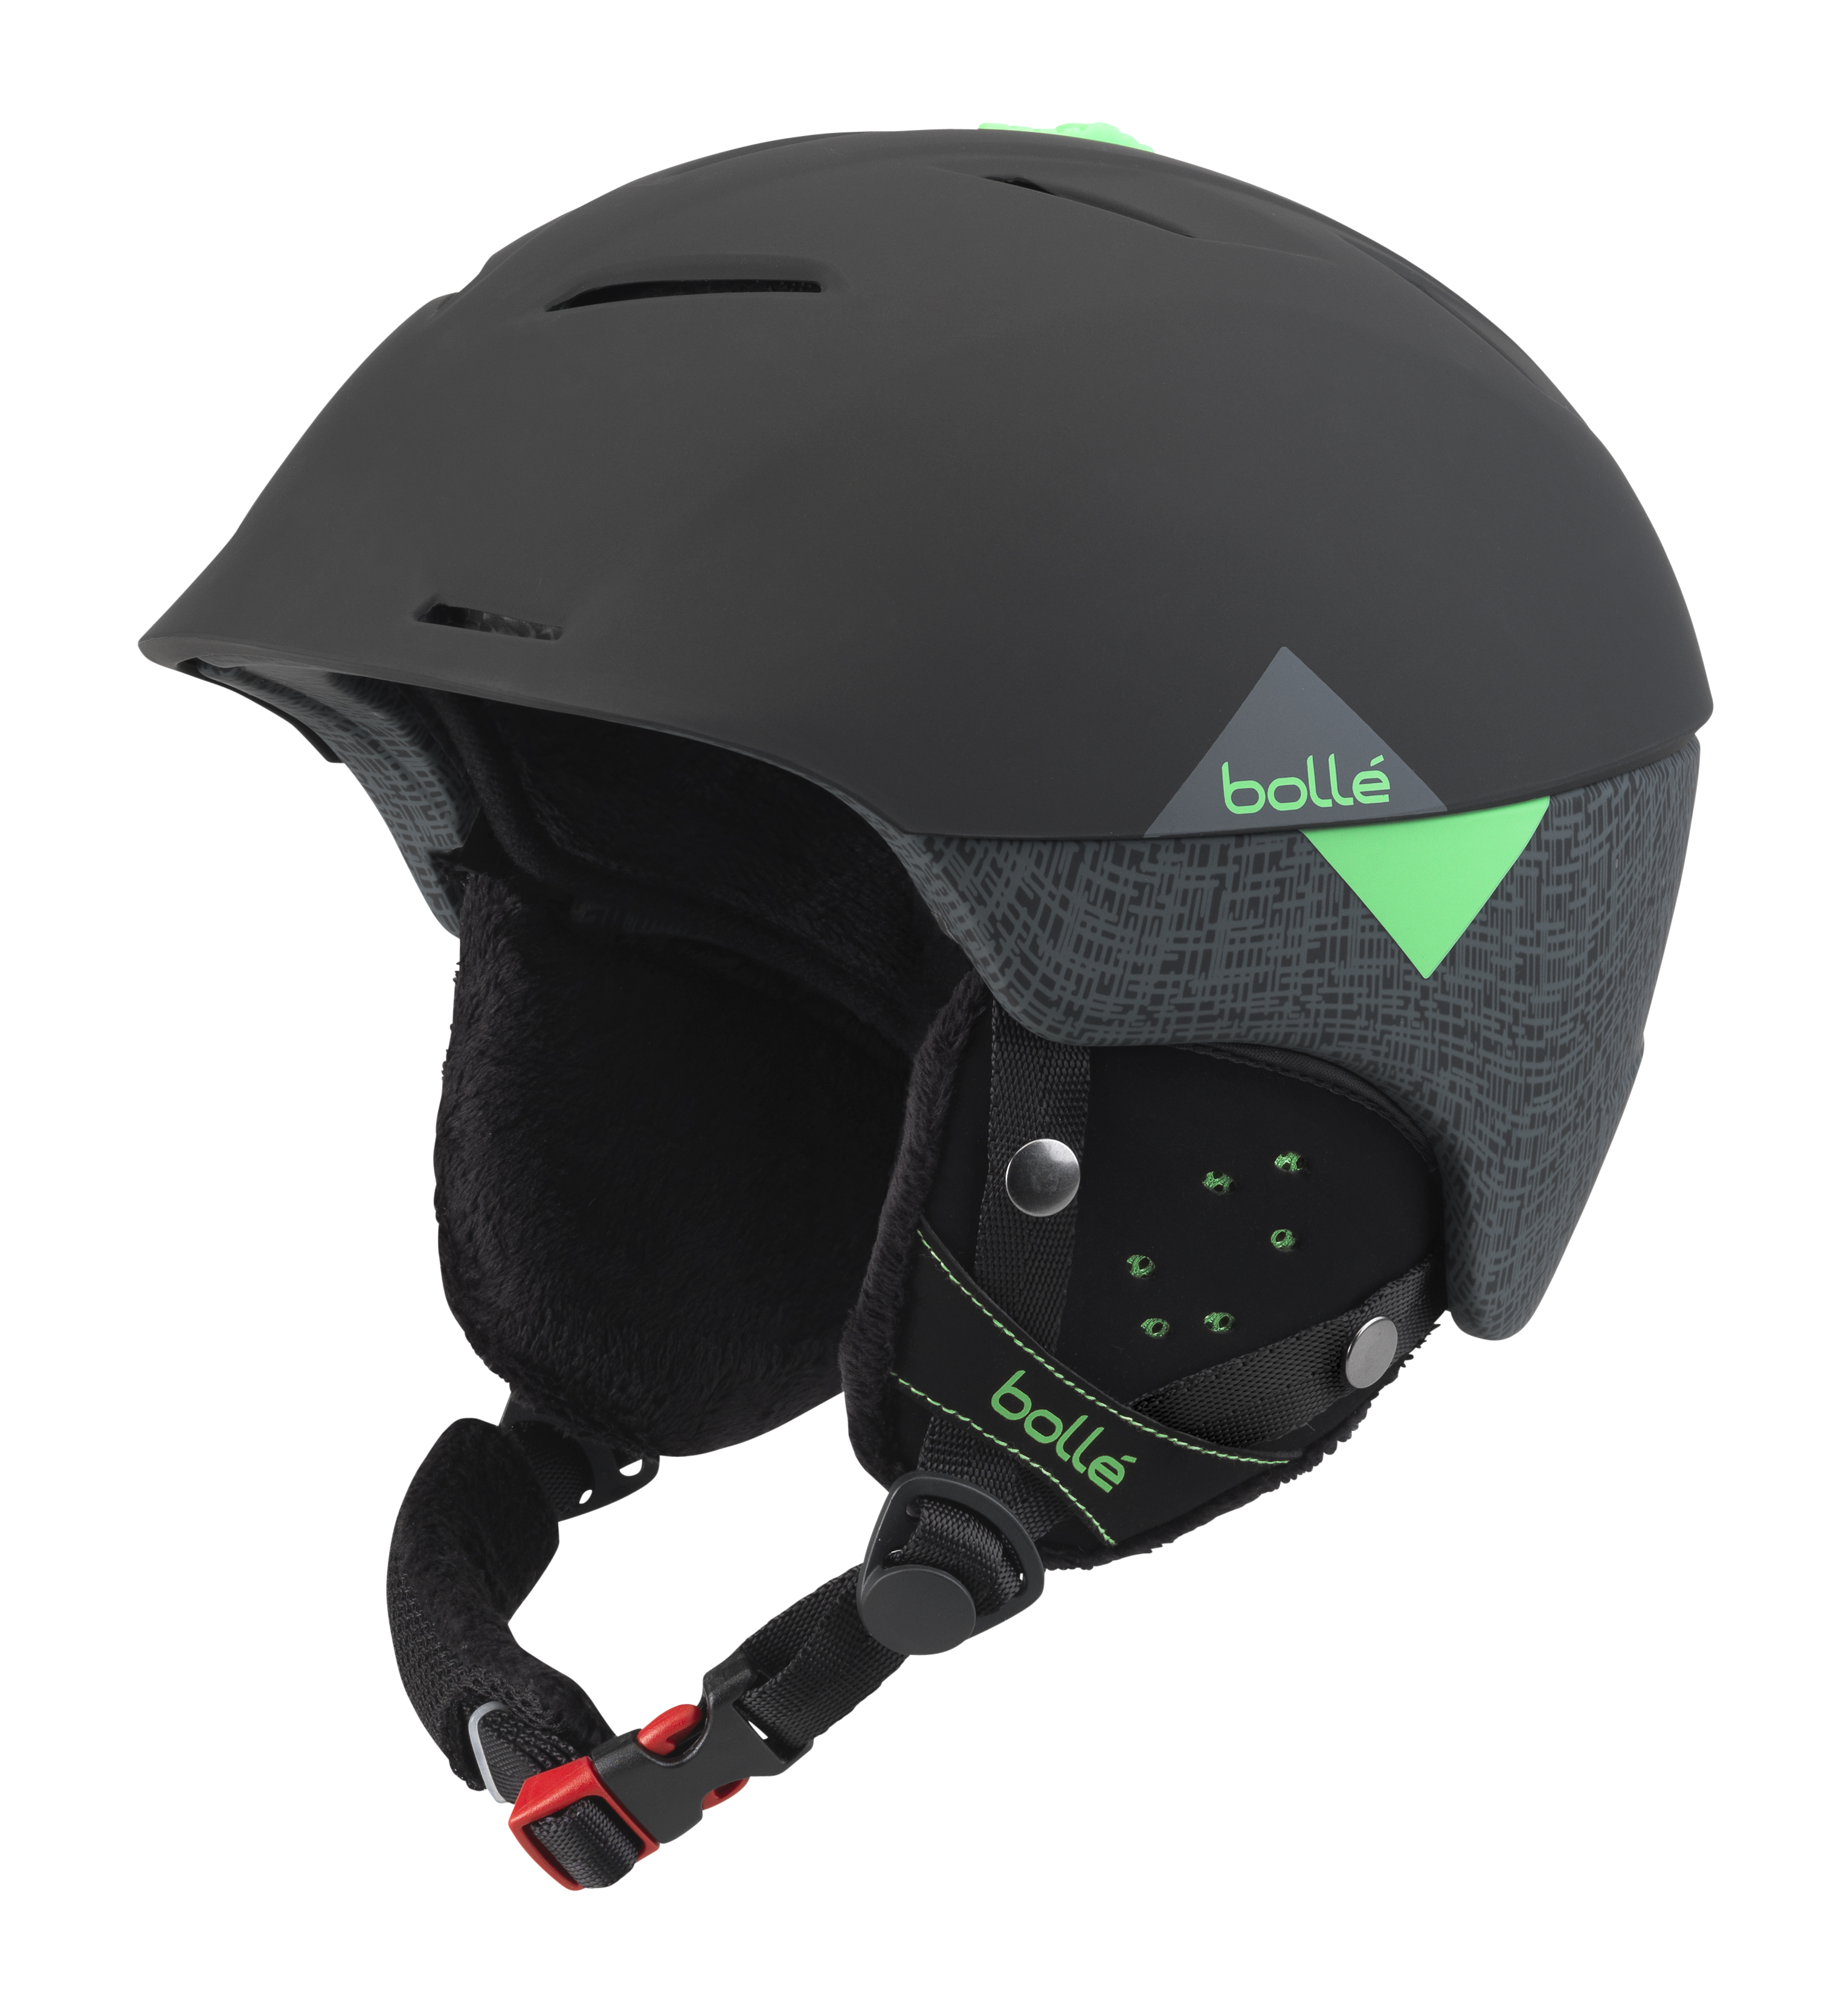 2017-18 Bolle Synergy Ski And Snowboard Helmet black